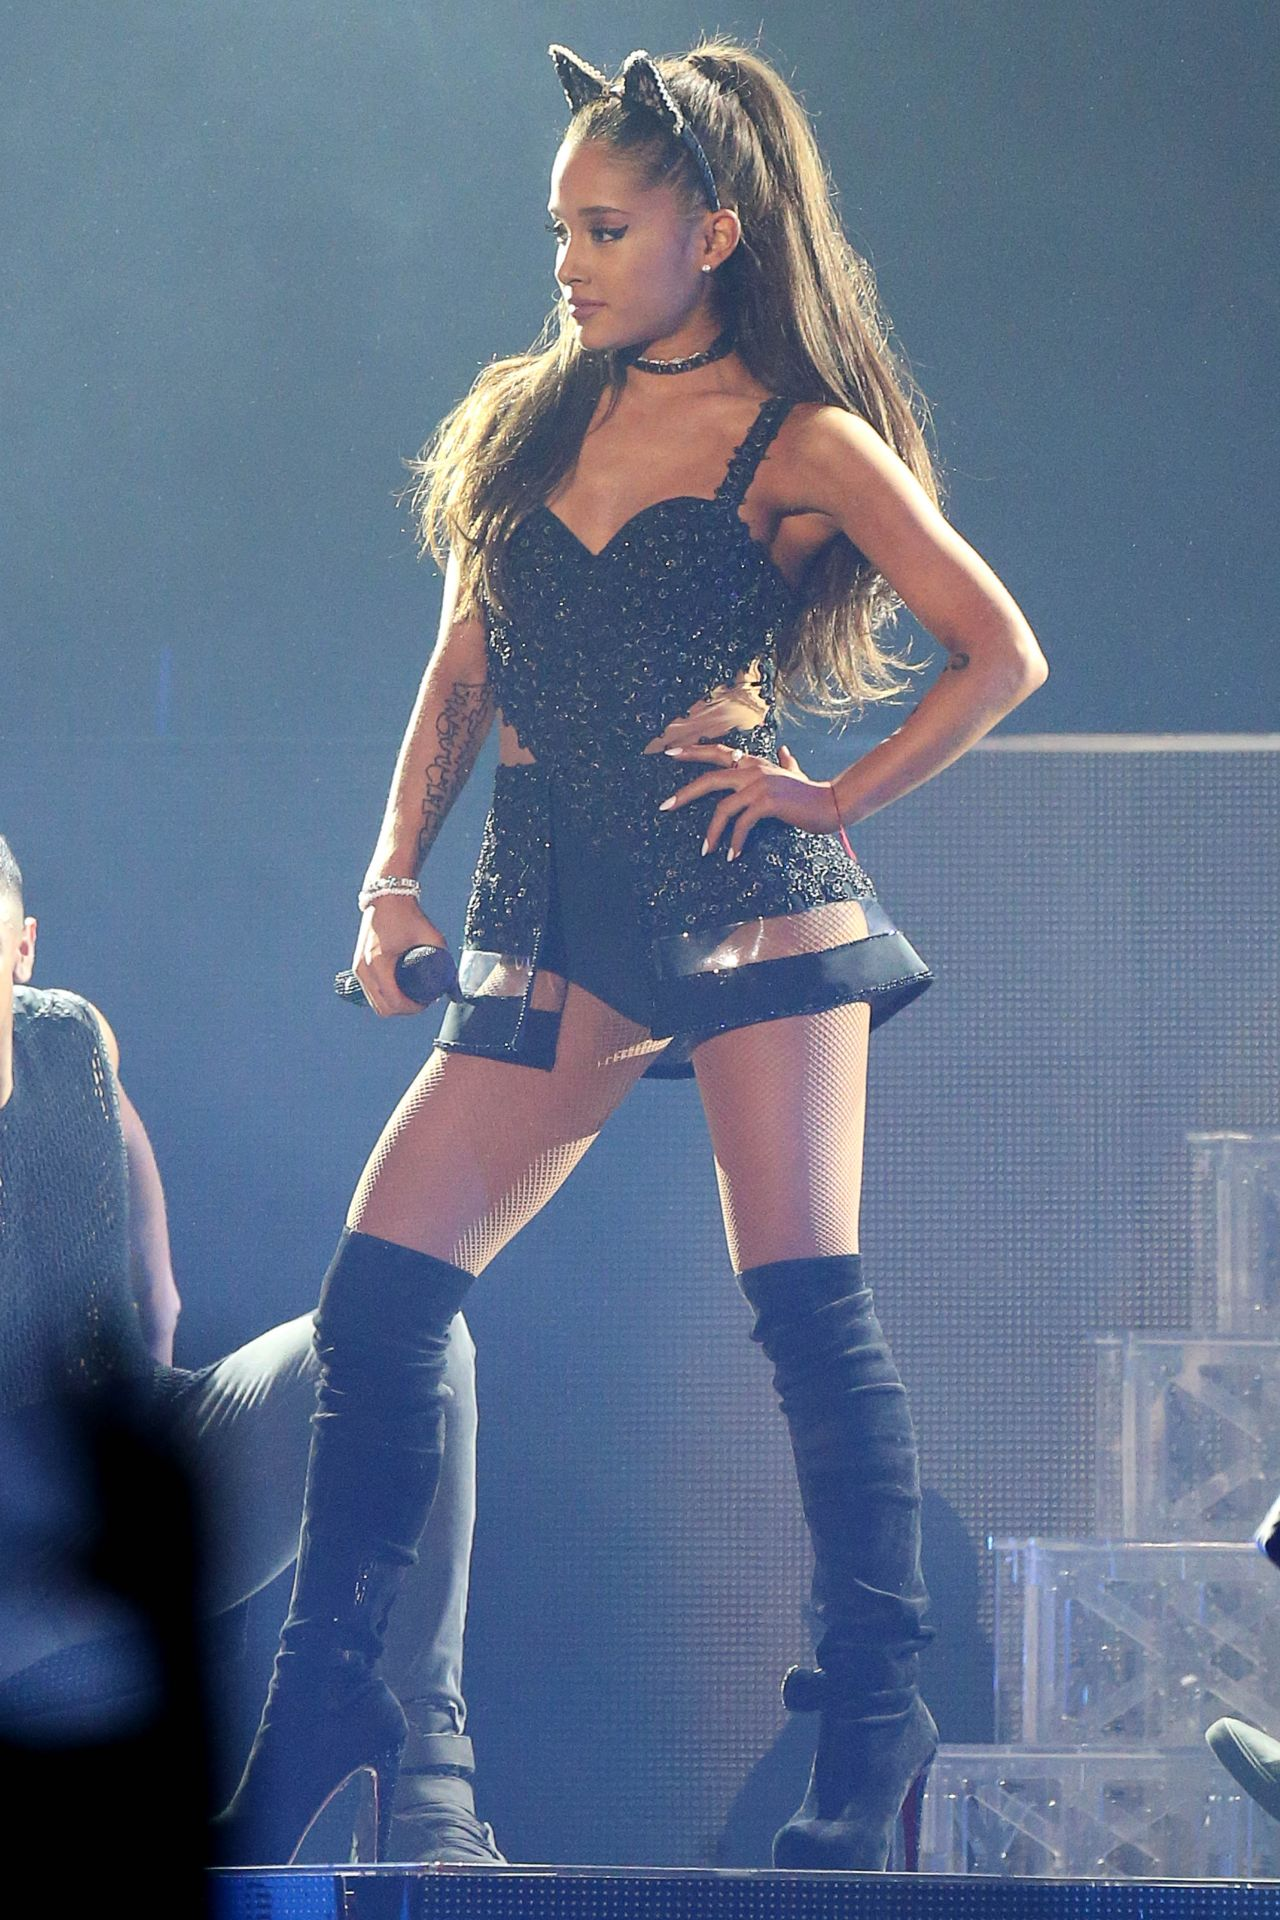 ariana grande the honeymoon tour in milan may 2015